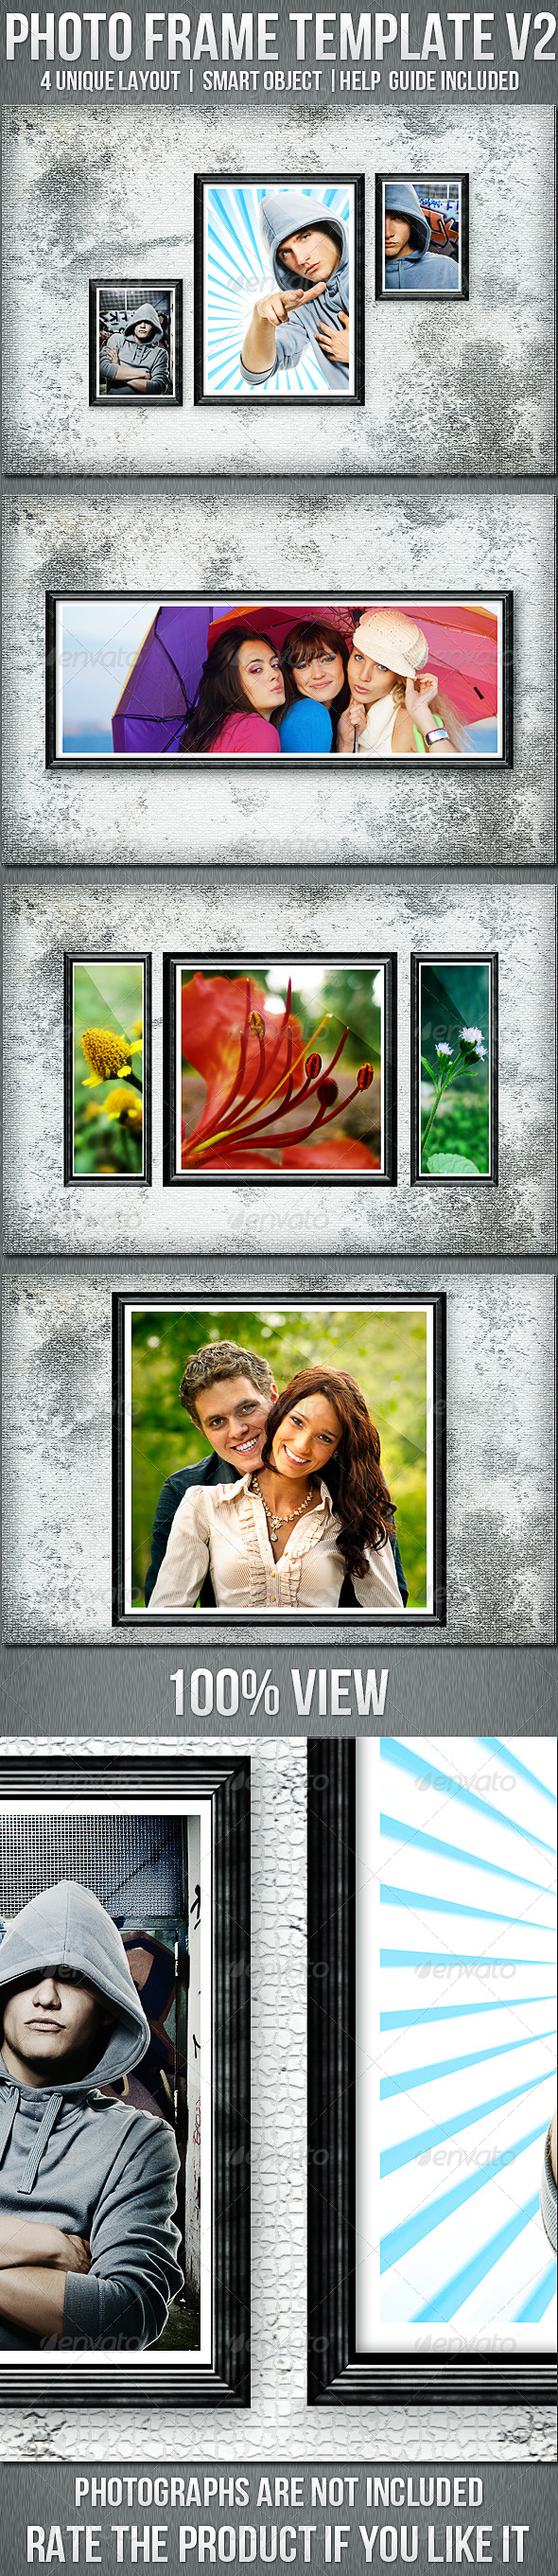 Photo Frame Templates V2 - Photo Templates Graphics